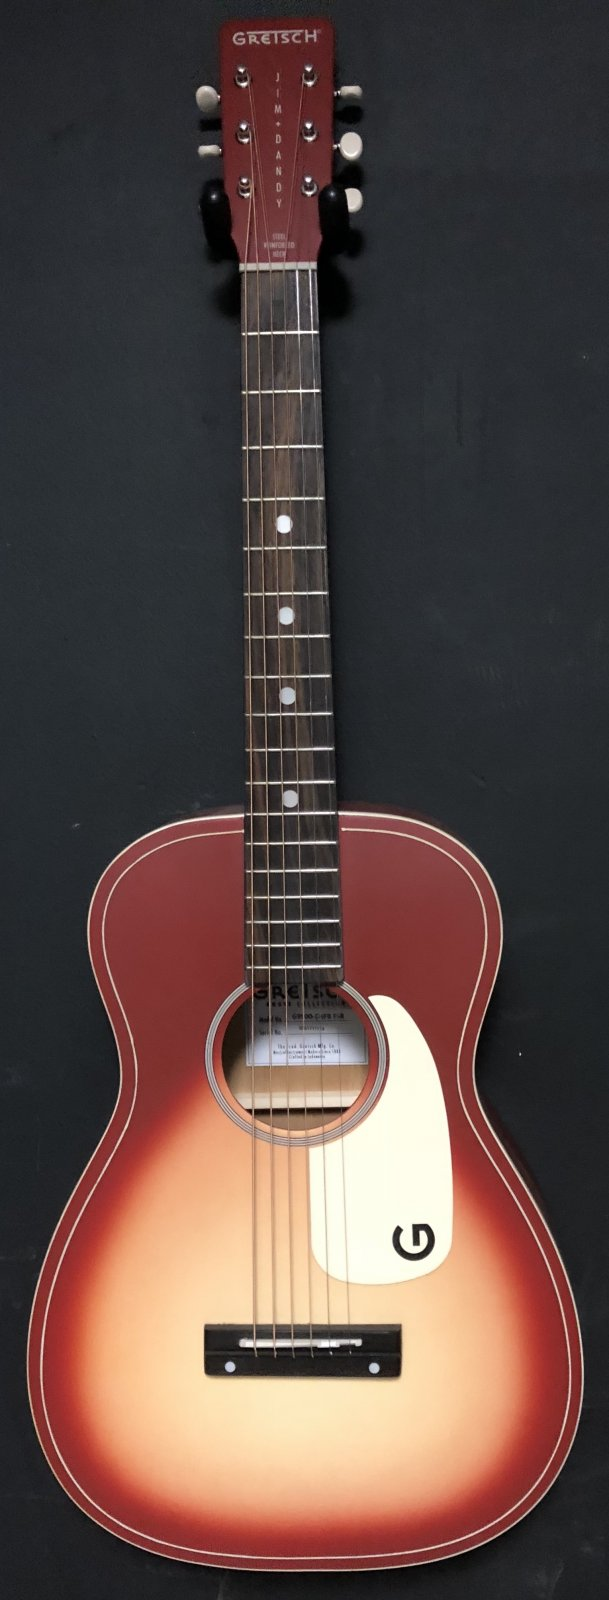 Gretsch G9500-CHFB FSR 3/4 Jim Dandy